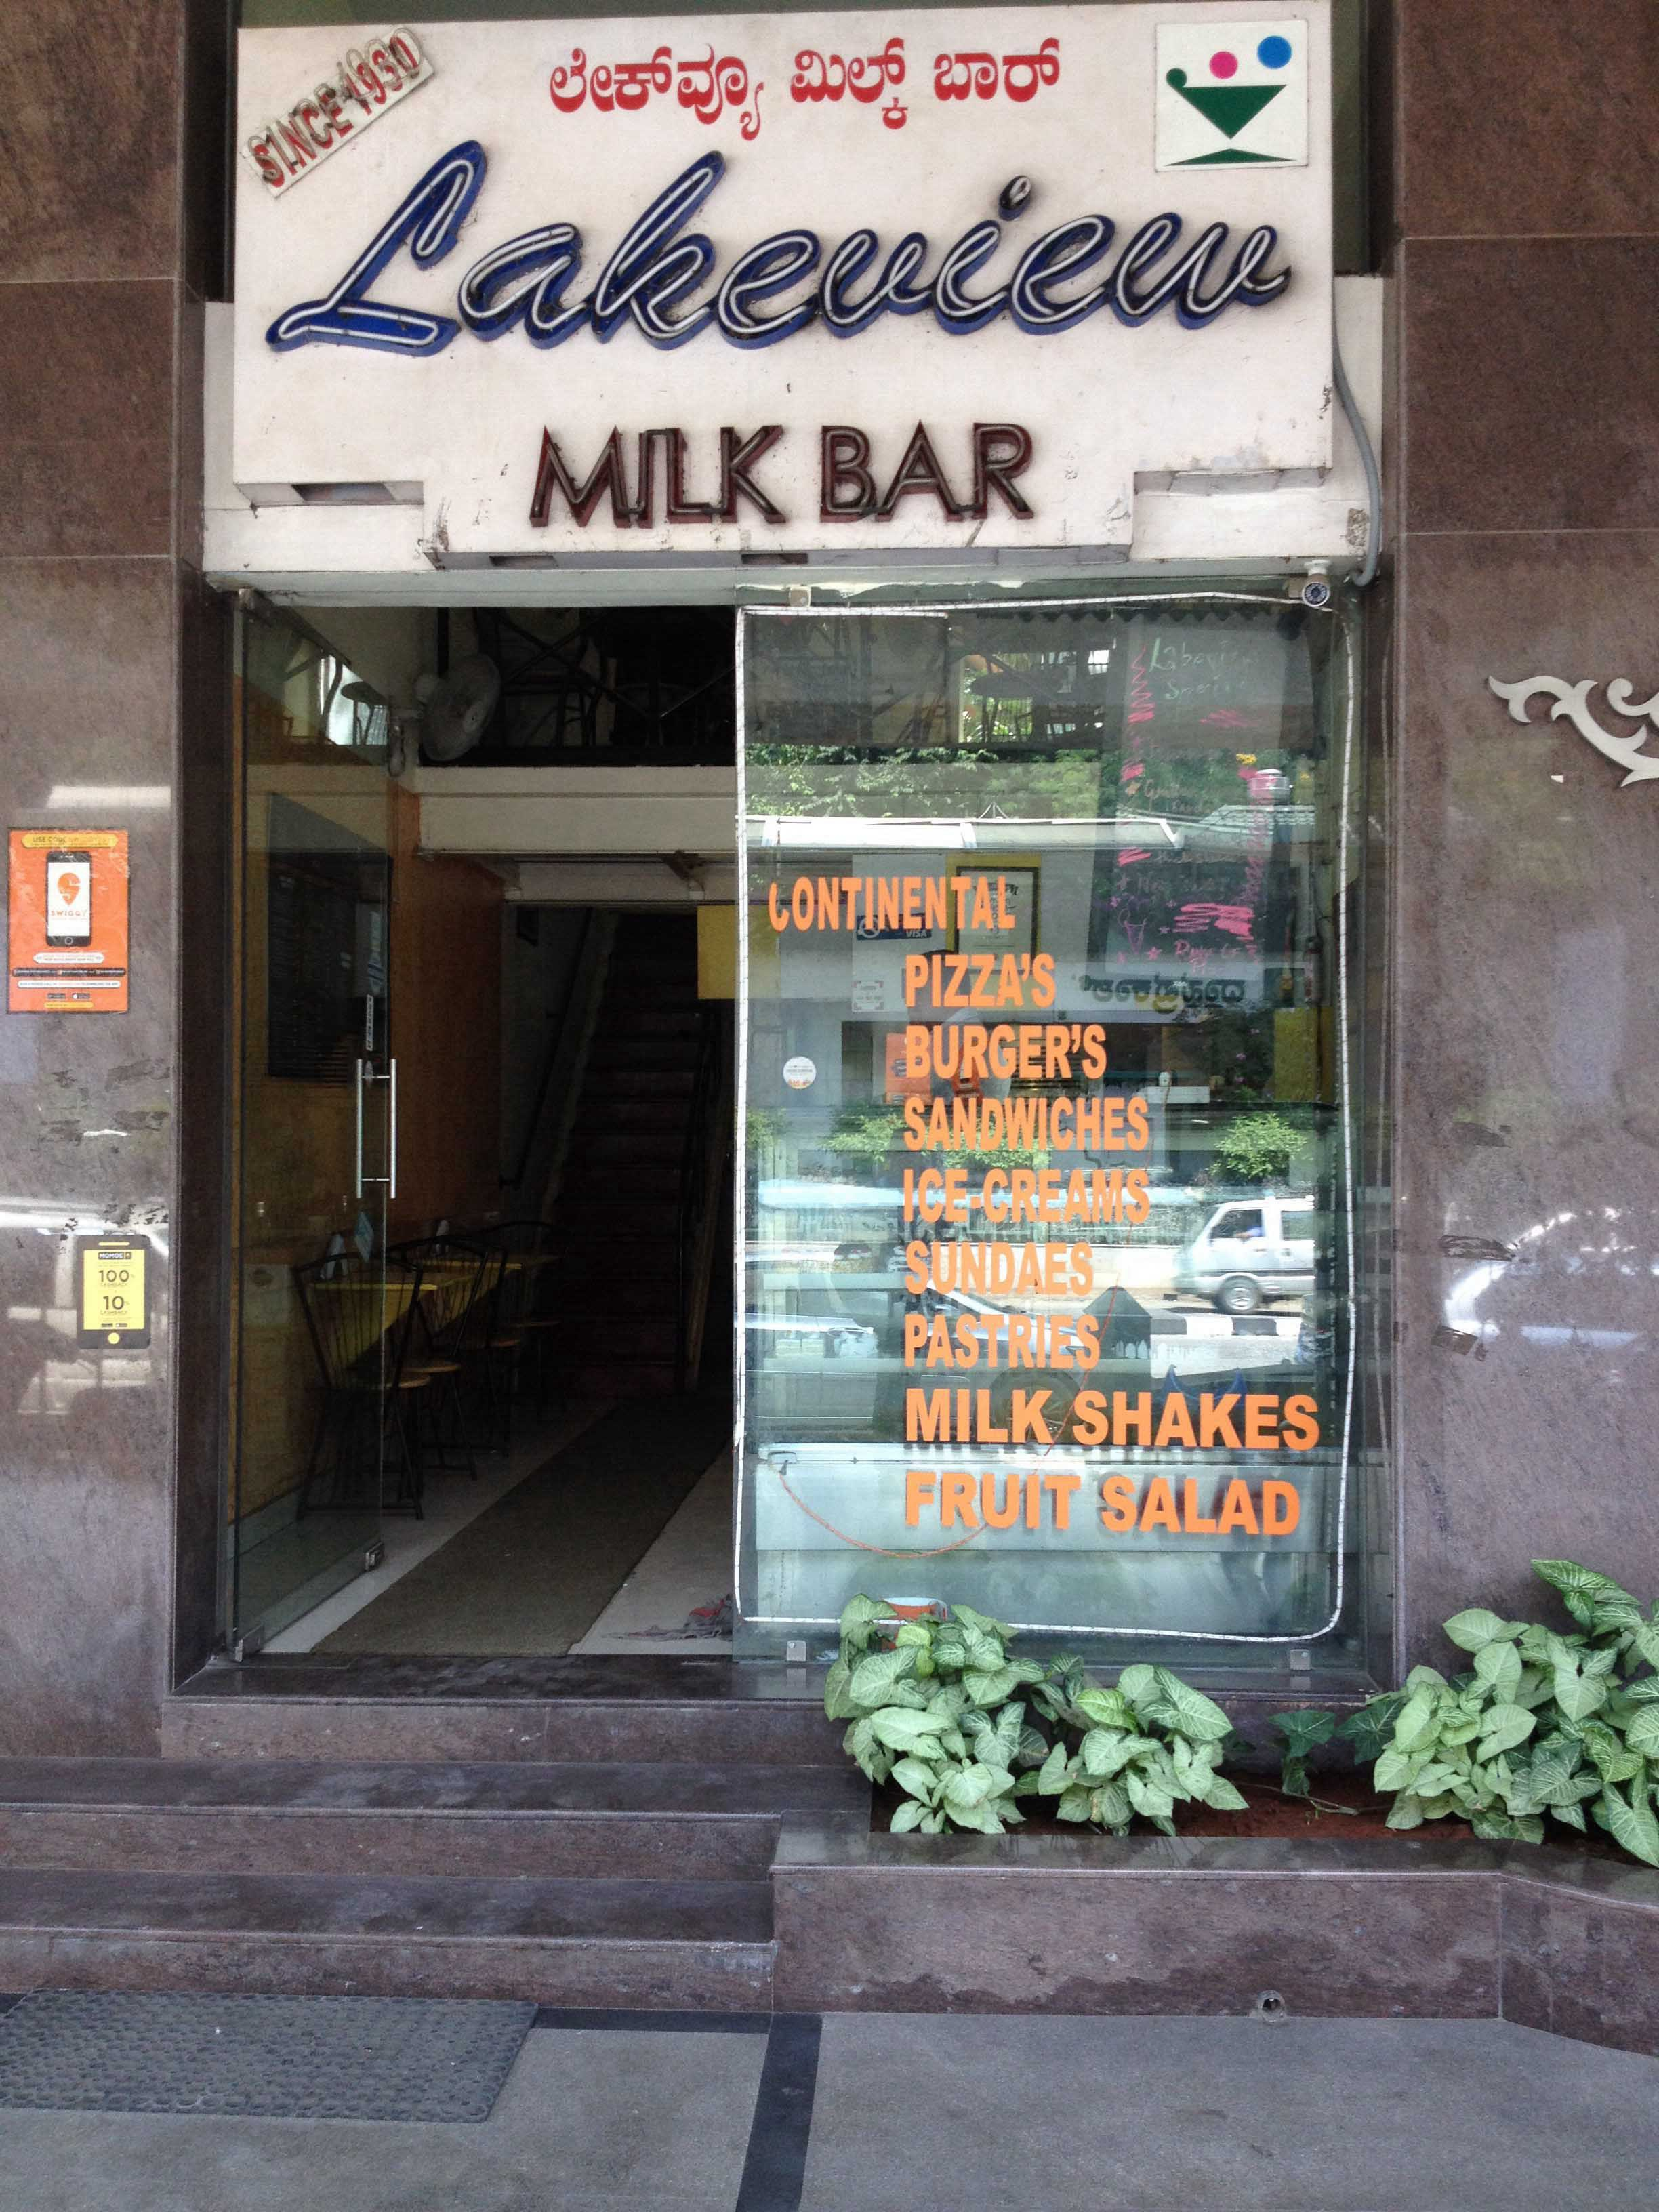 Lakeview Milk Bar - MG Road - Bangalore Image